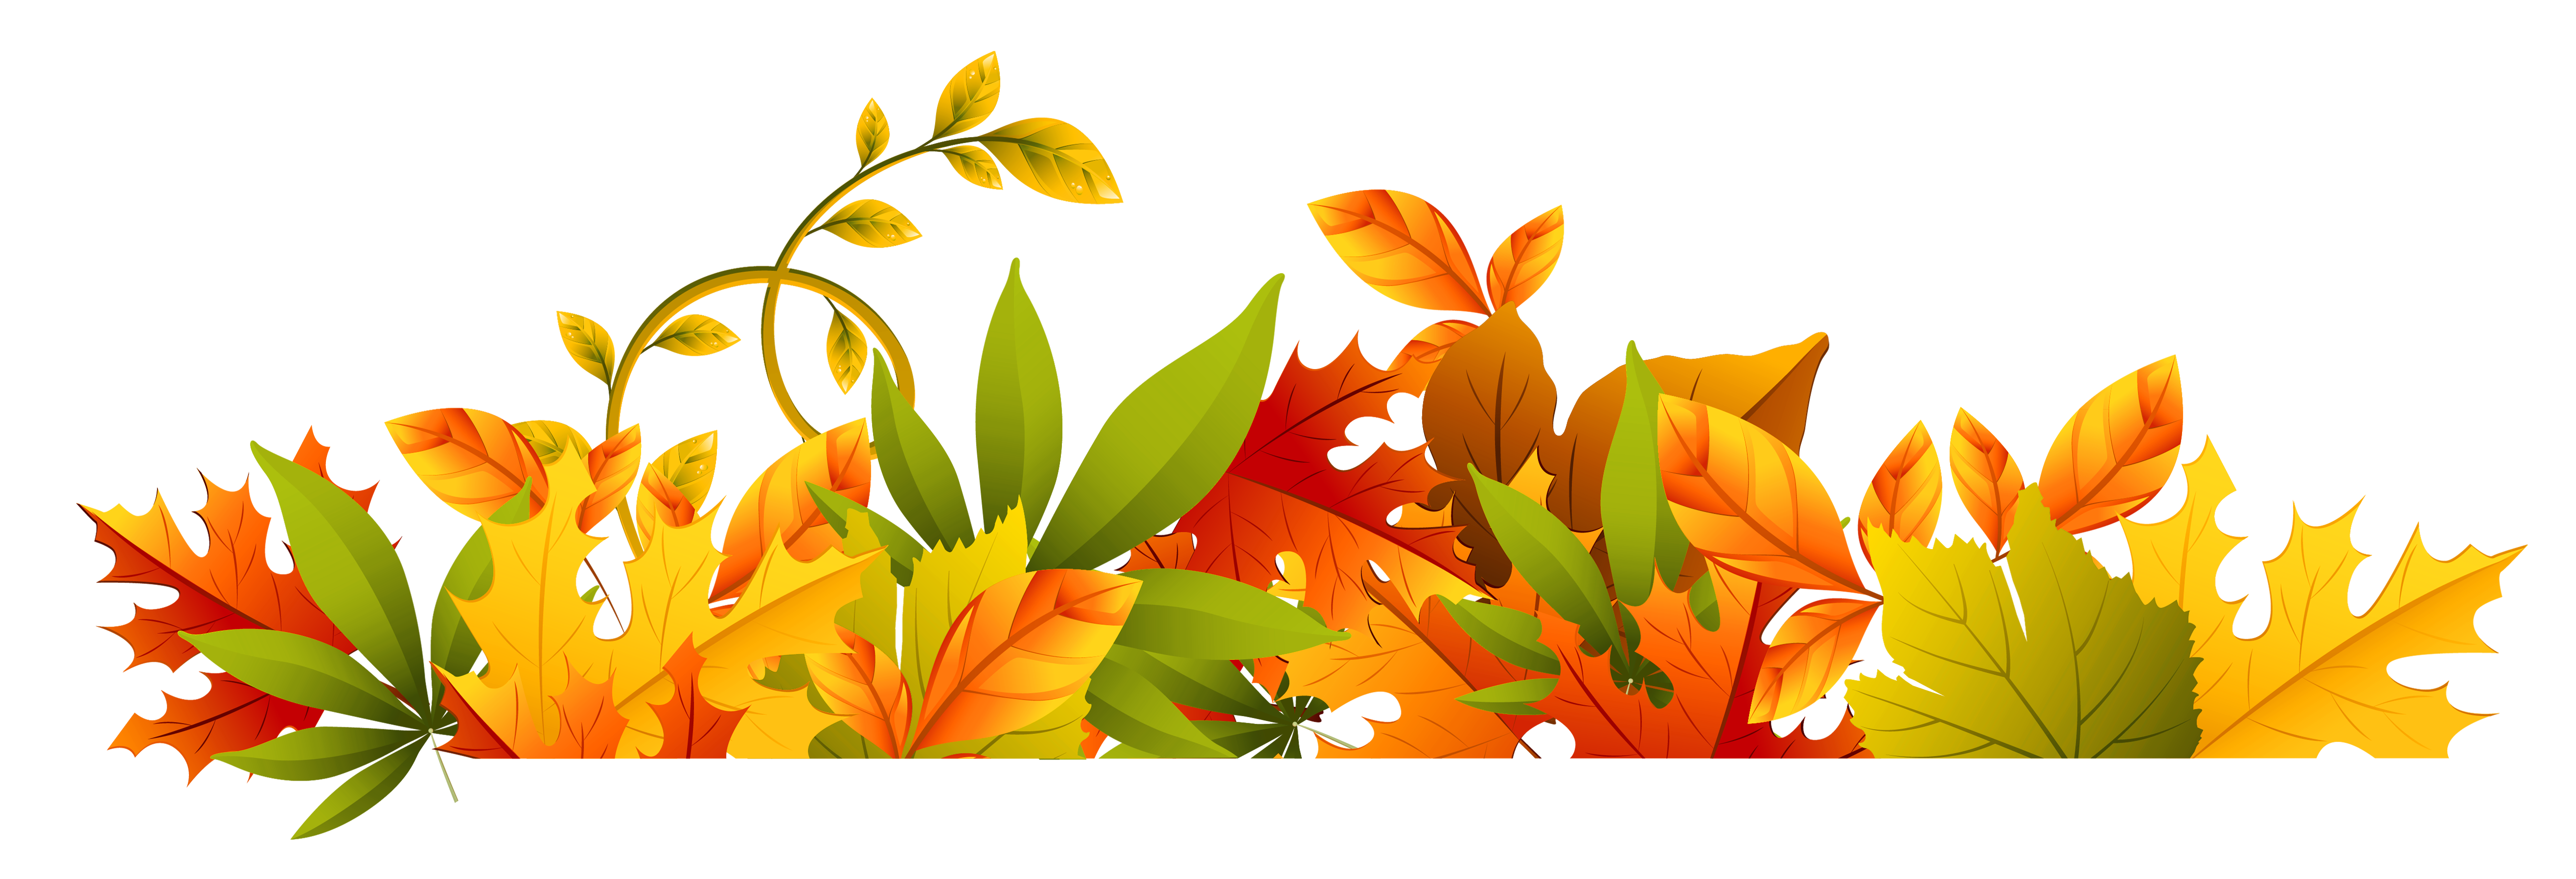 Clipart winter foliage.  collection of free